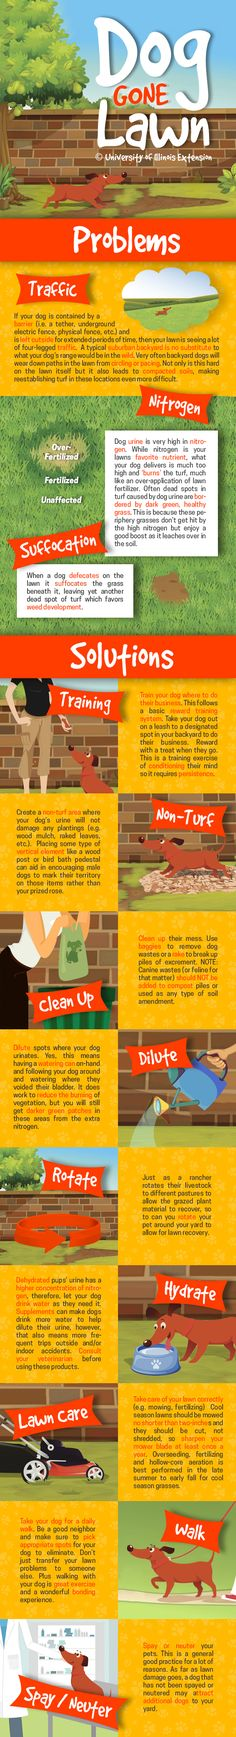 Done Gone Lawn - Tips for Pet Lawn Damage #solutions #yard